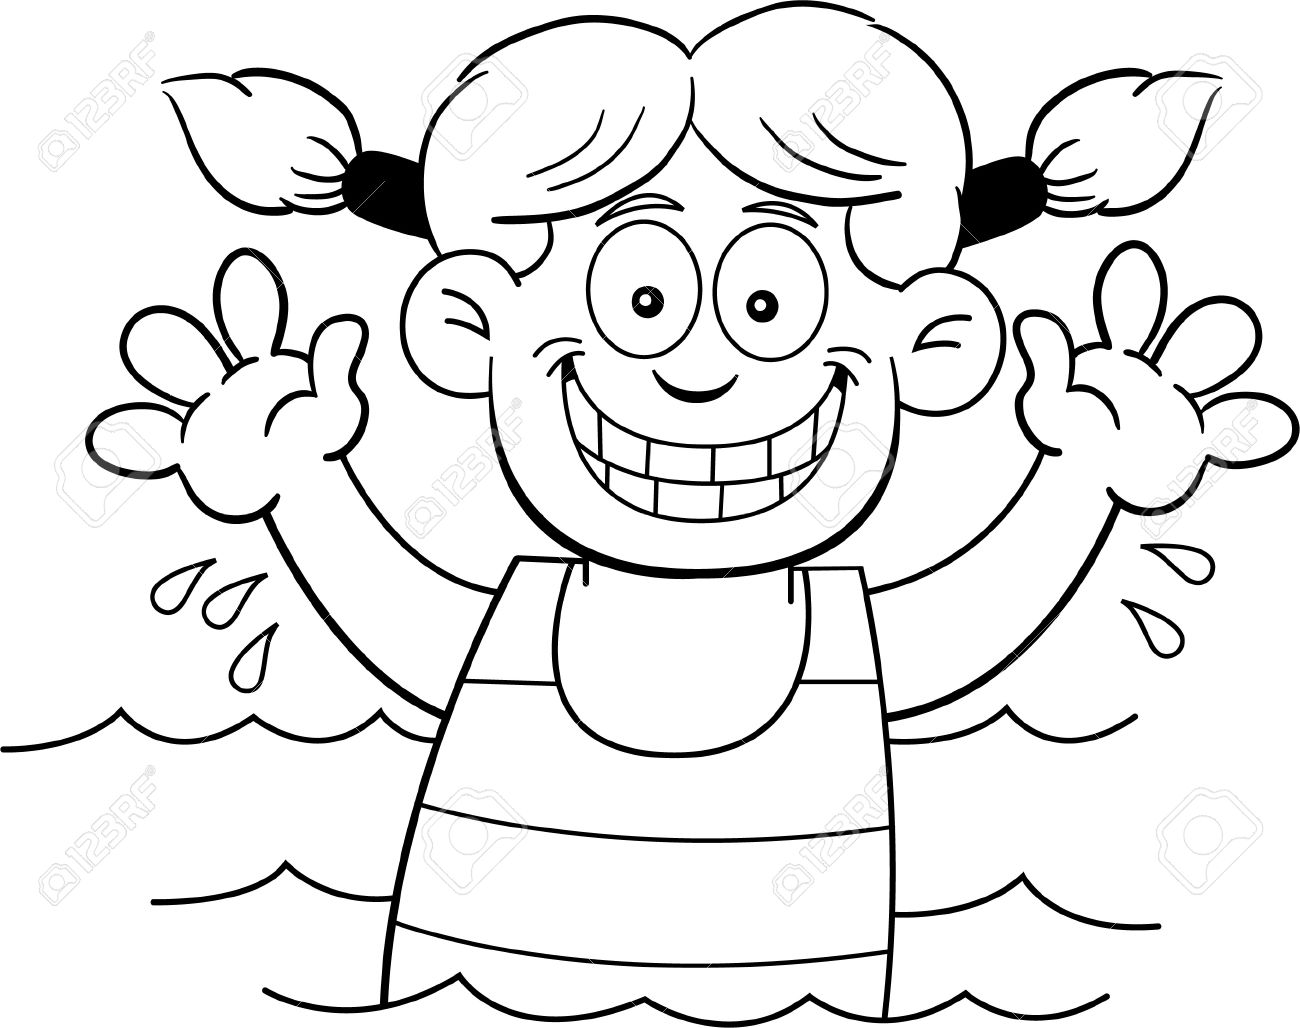 girl swimming clipart black and white #14